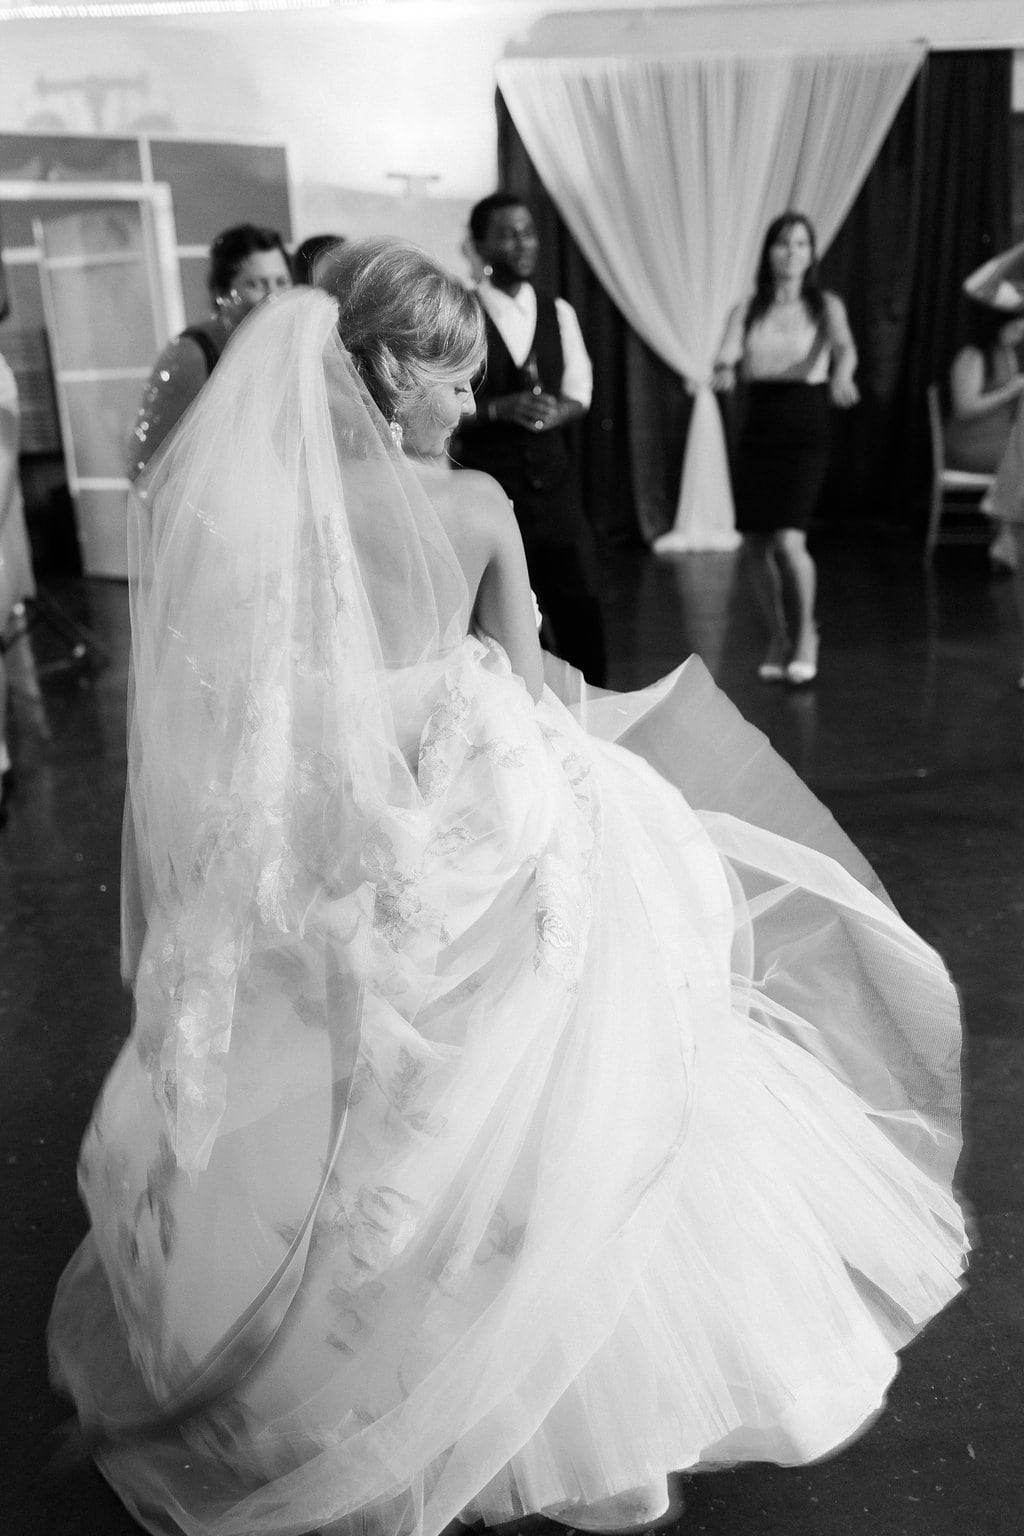 Bride dancing on the dance floor black and white photo